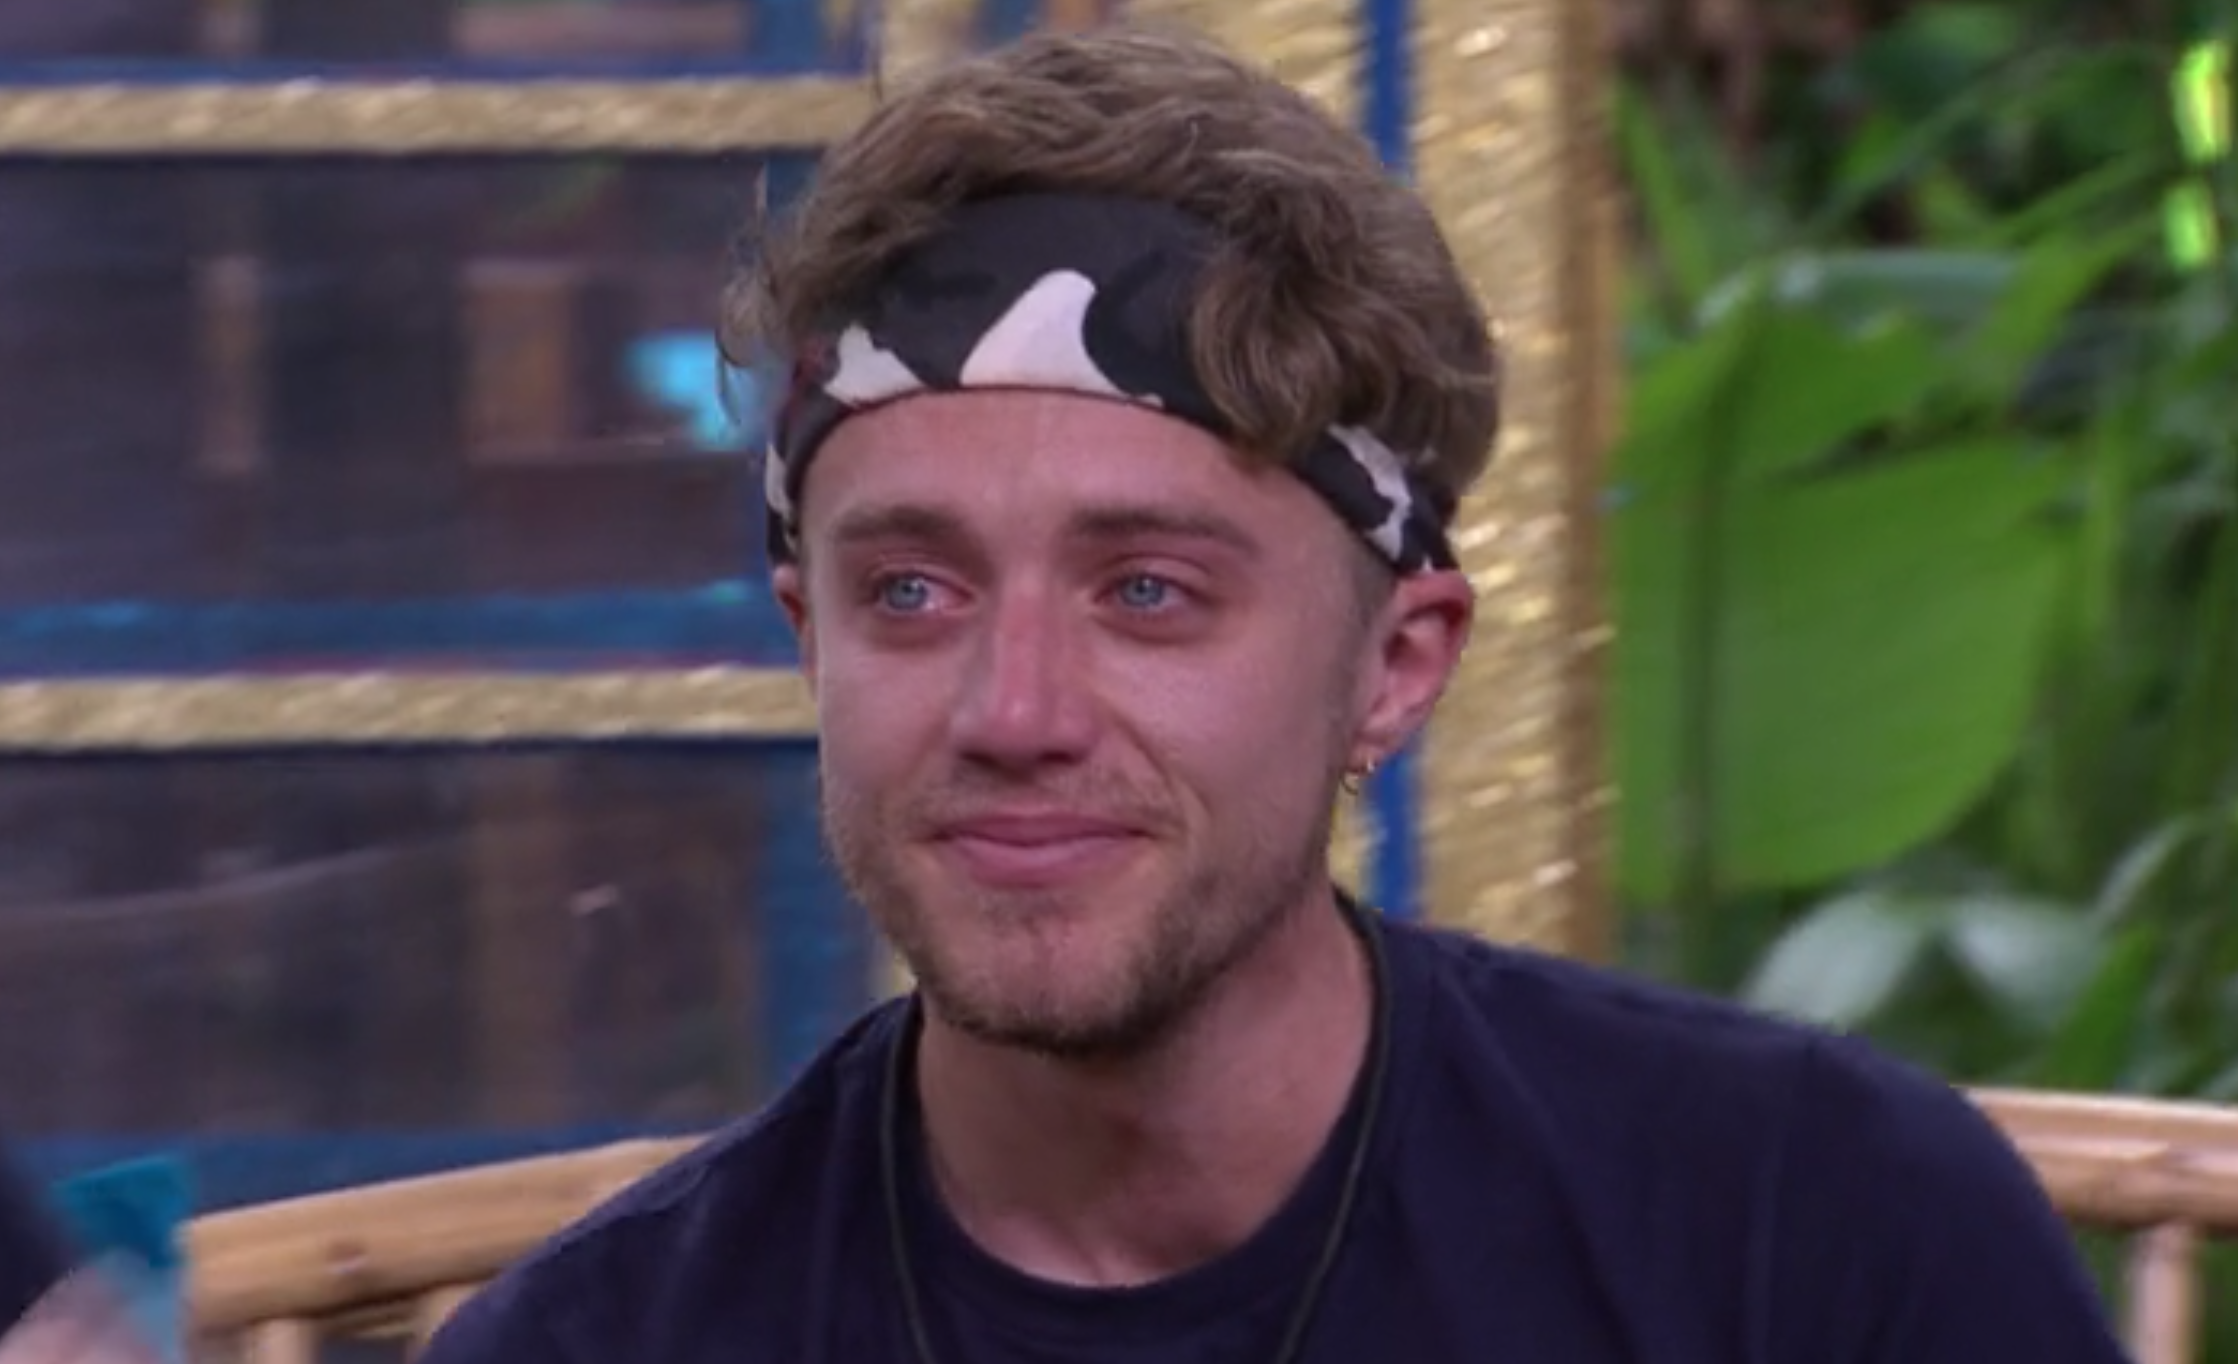 I'm A Celebrity: Roman Kemp breaks down watching message from Mum and Dad